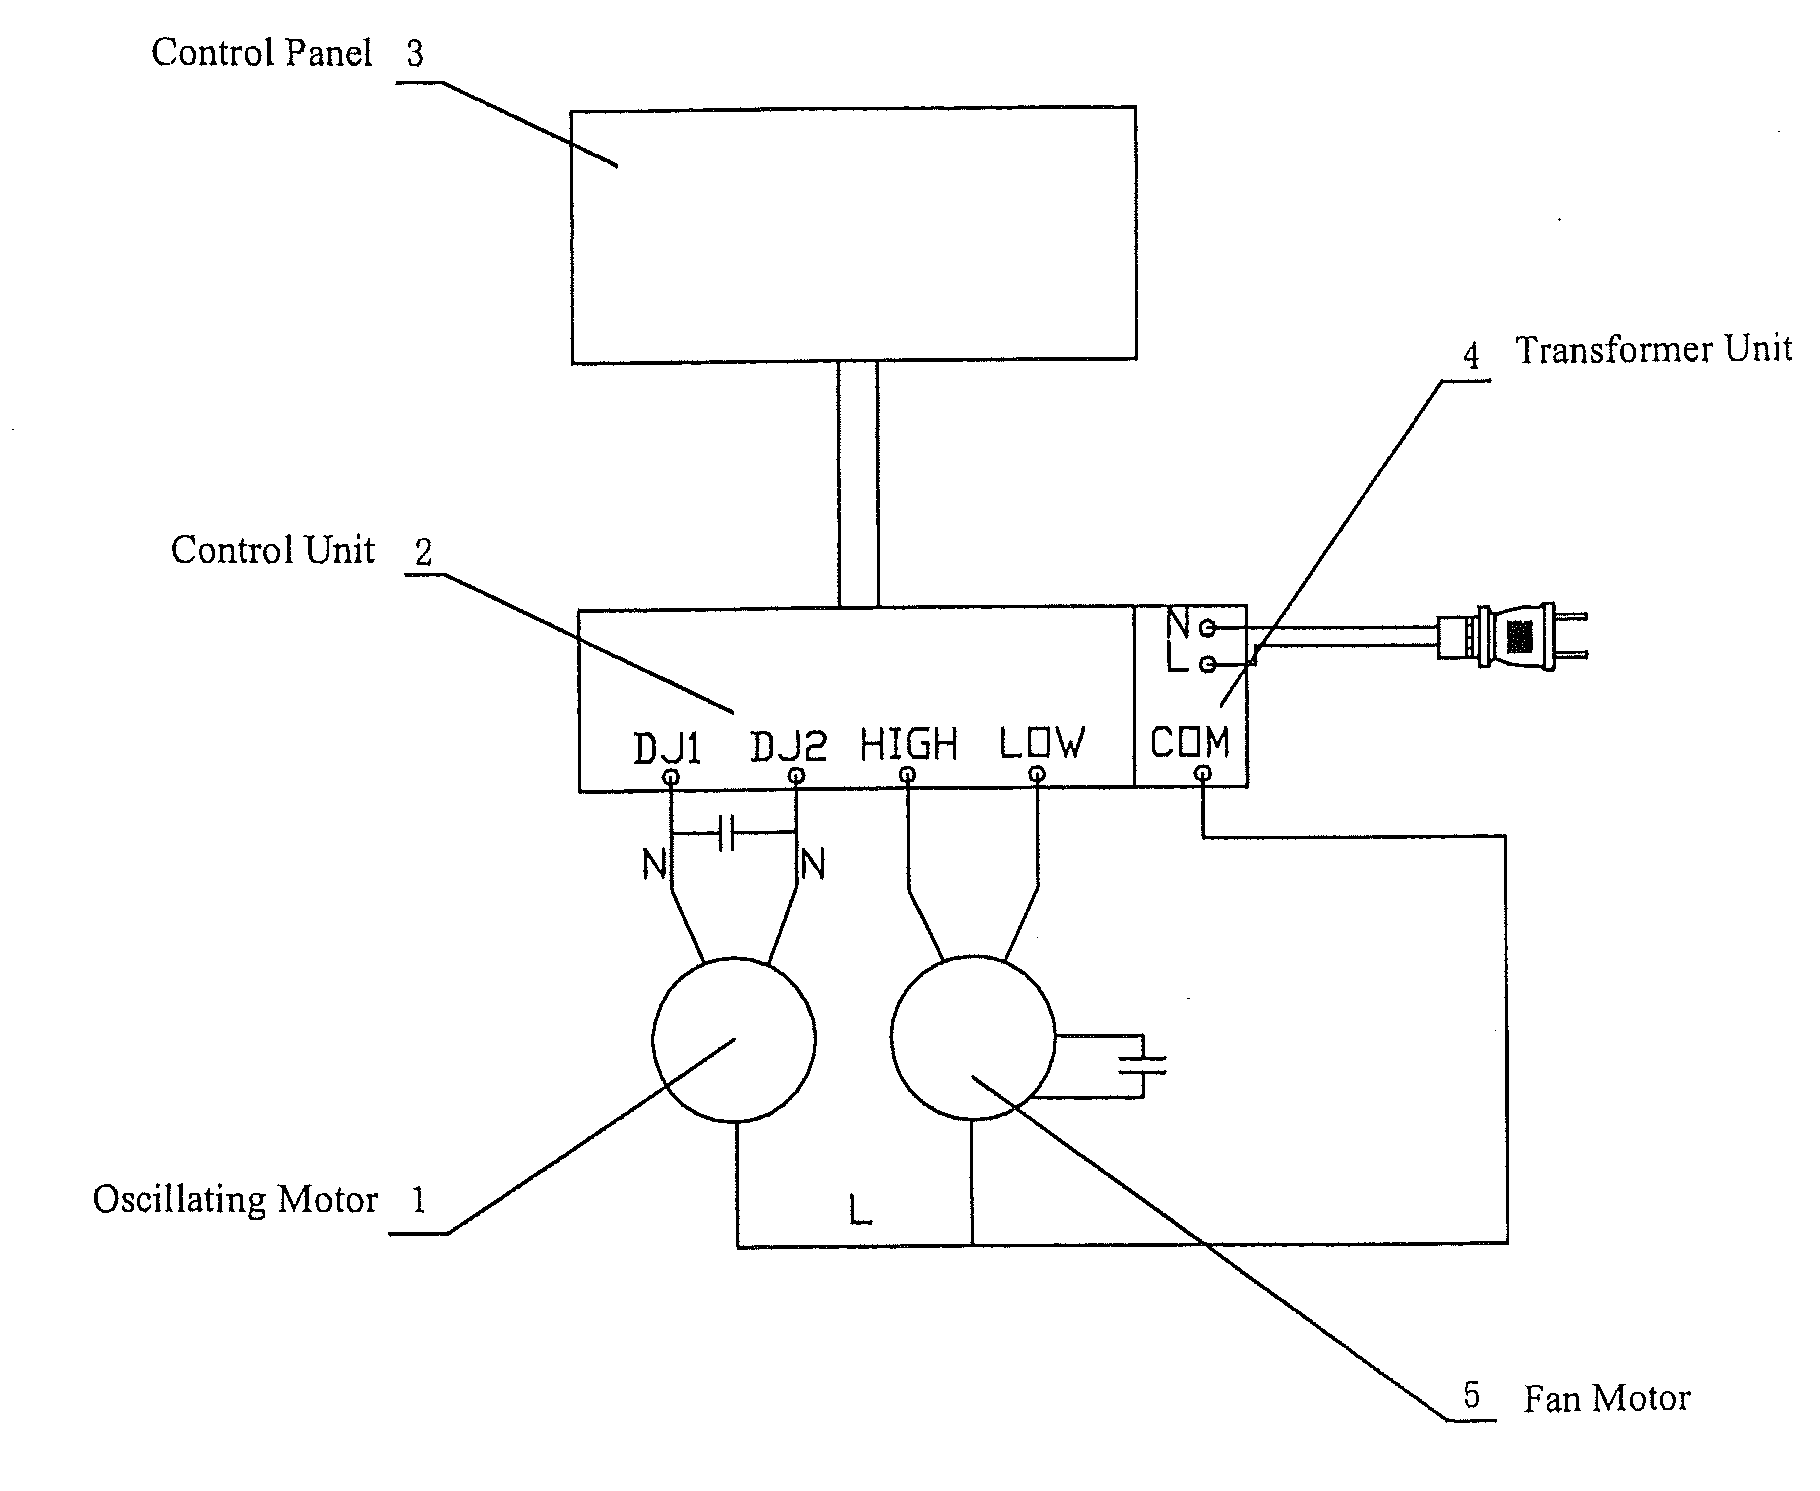 lasko oscillating fan motor wiring diagram 3 sd fan motor wiring diagram - impremedia.net oscillating tower fan motor wiring diagram